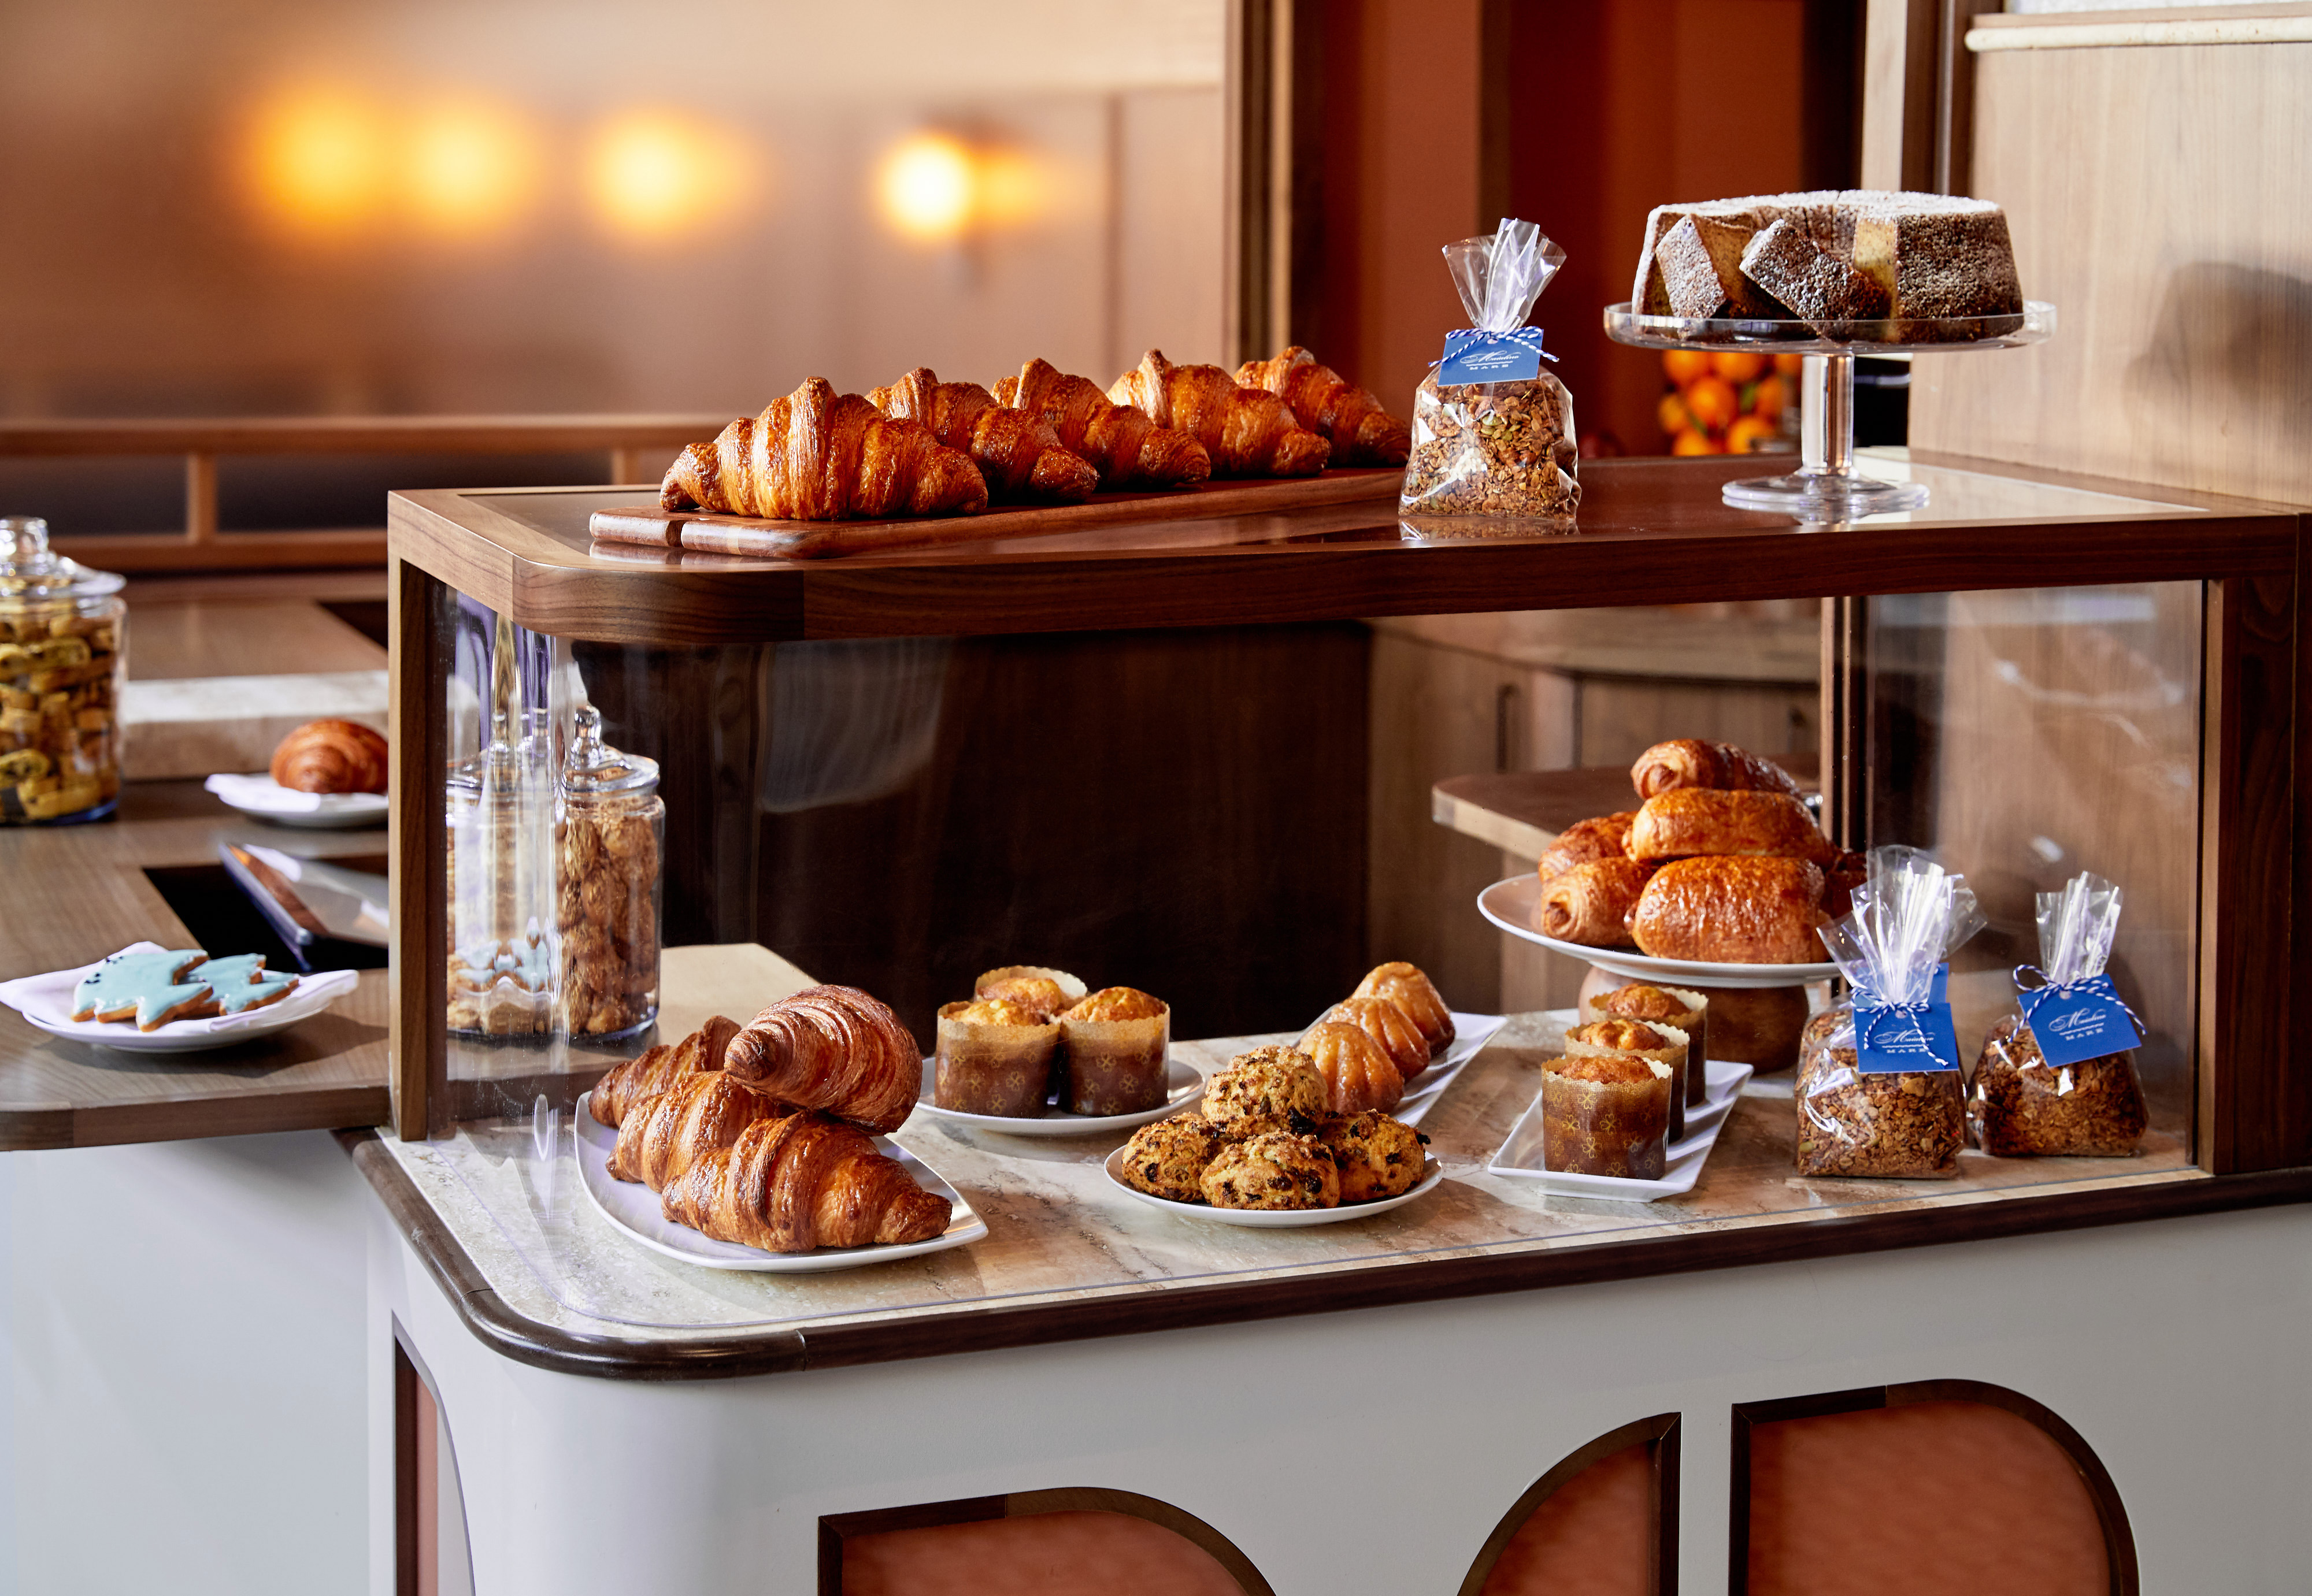 thompson hotel dc maialino mare pastry case